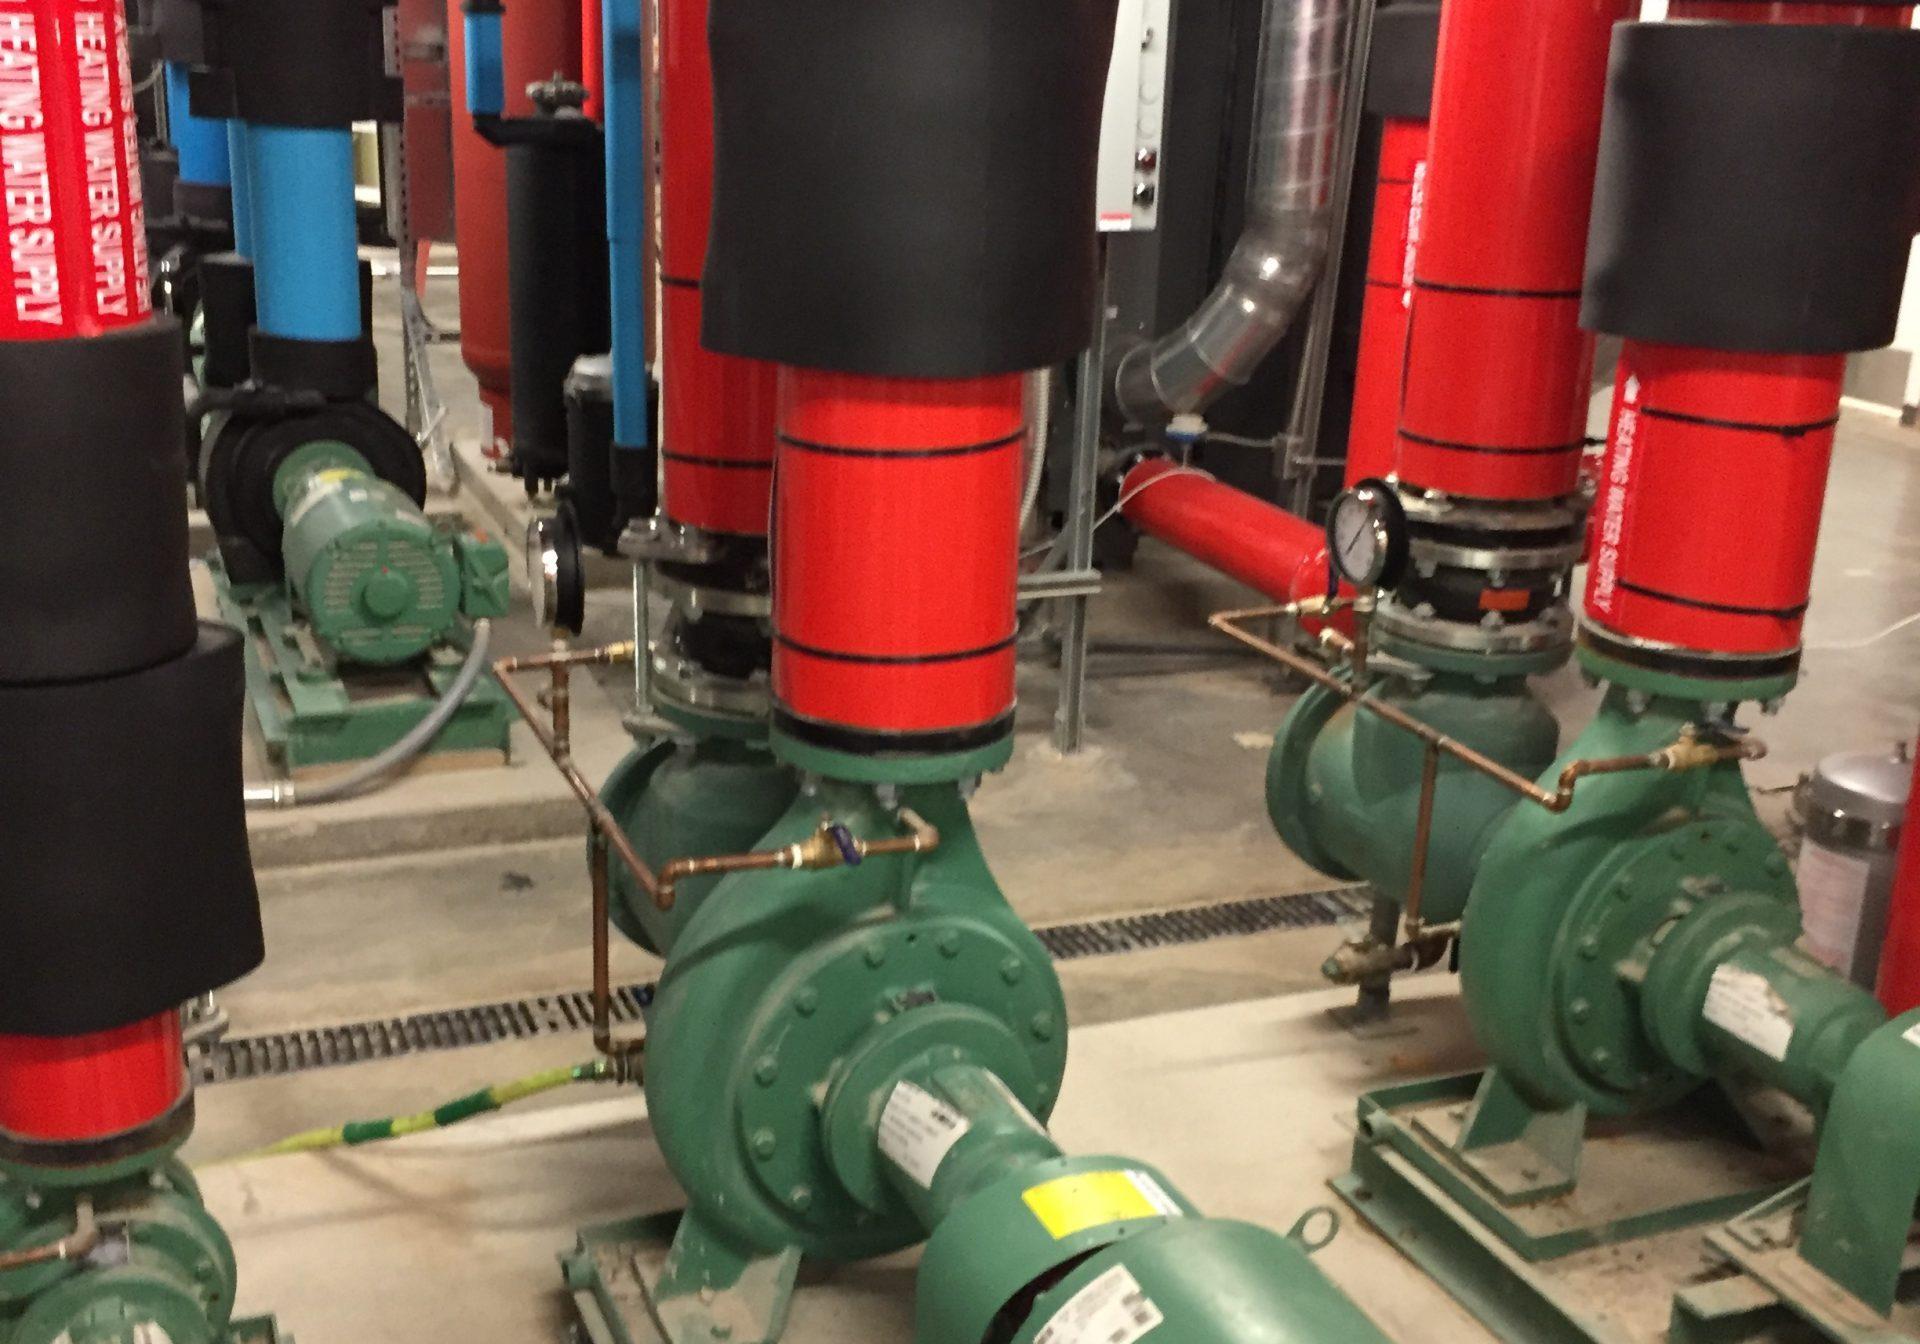 Boiler room of a plumbing system